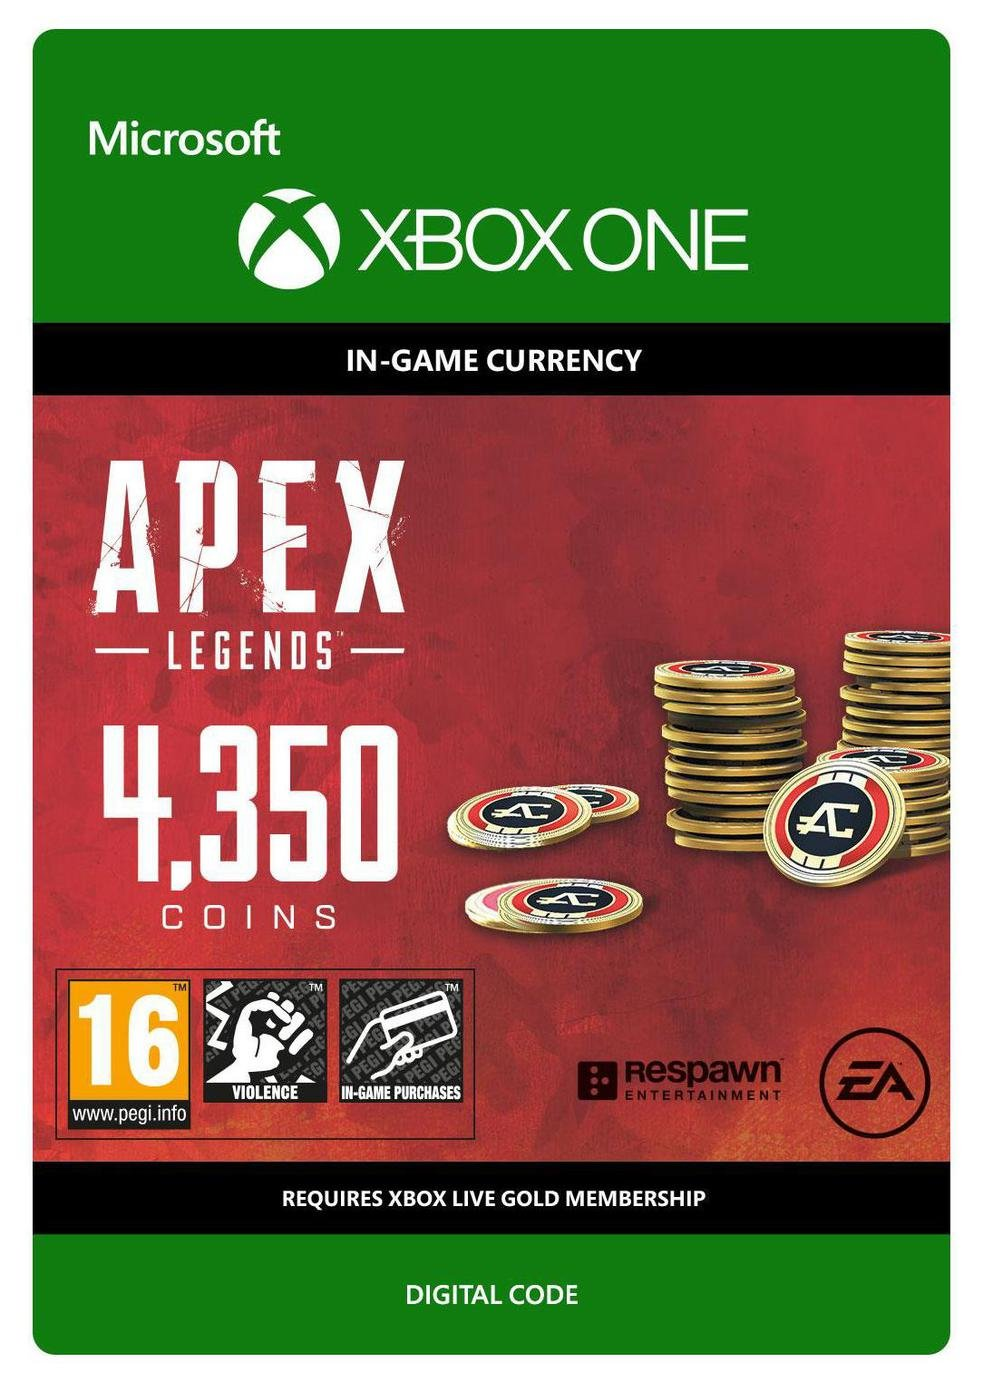 Apex Legends 4350 Coins Xbox One Receipt Code